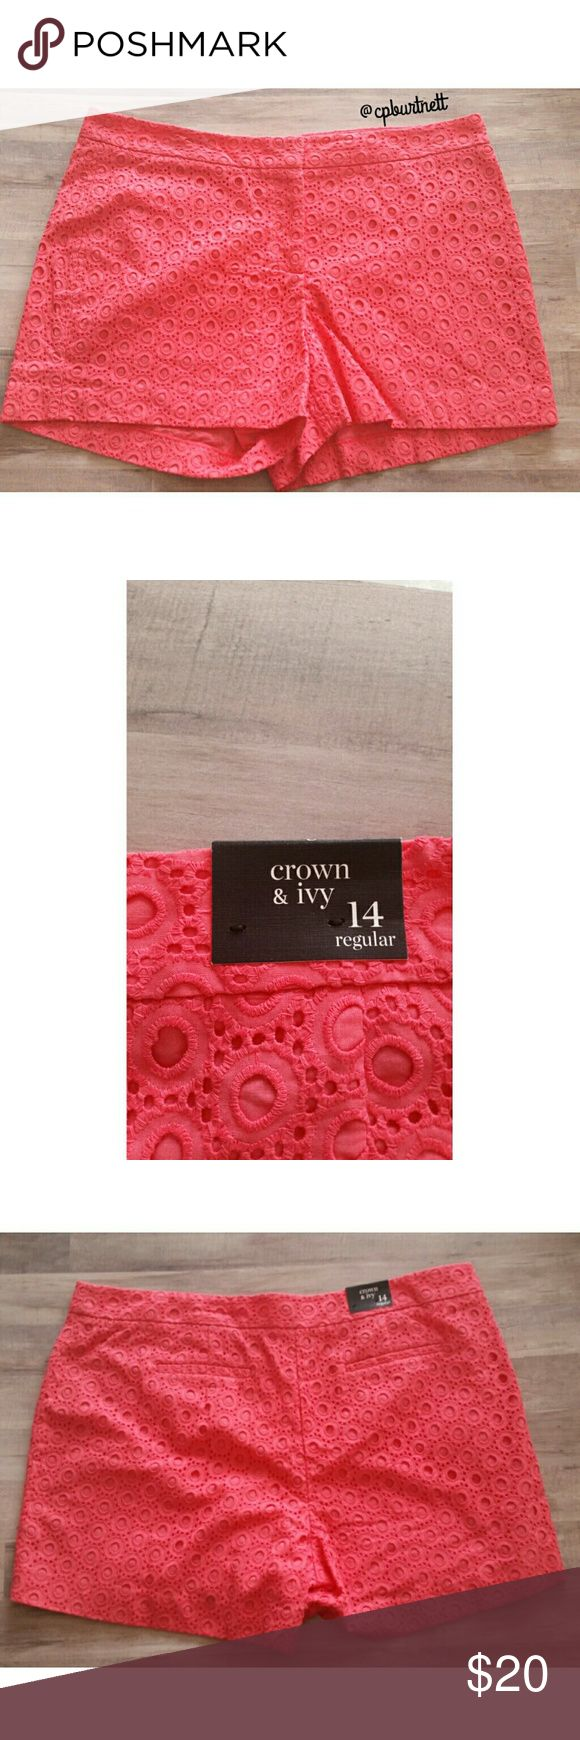 "NWT Crown & Ivy Eyelet Shorts NWT Crown & Ivy Eyelet Shorts In great new condition, no flaws.  Coral/pink color Waist 19"" Inseam 4"" All offers considered. Crown & Ivy  Shorts"